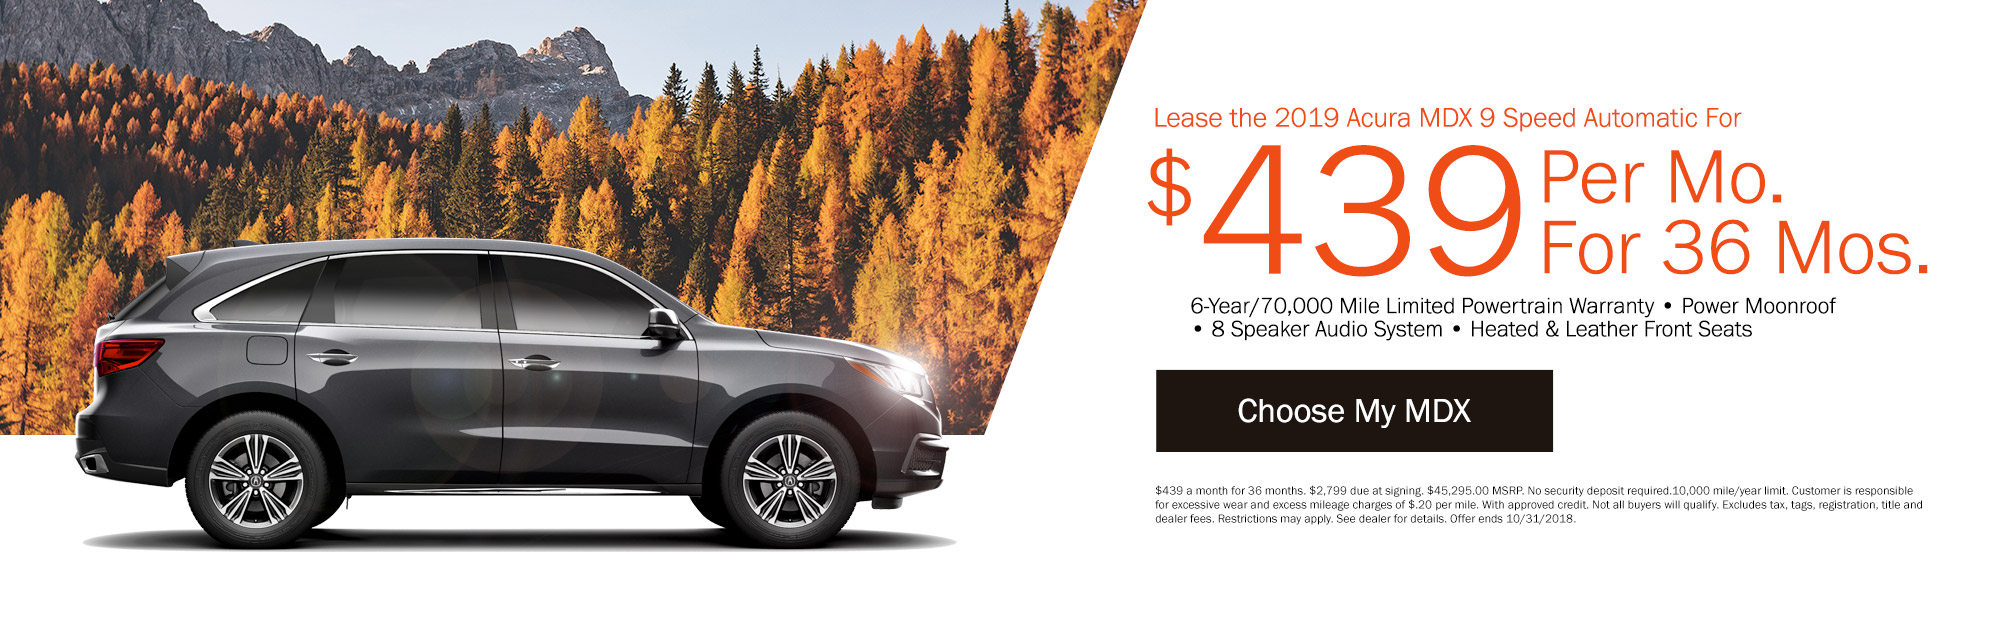 Acura Dealership In Latham NY Serving Albany And Troy Northeast Acura - Acura mdx dealers